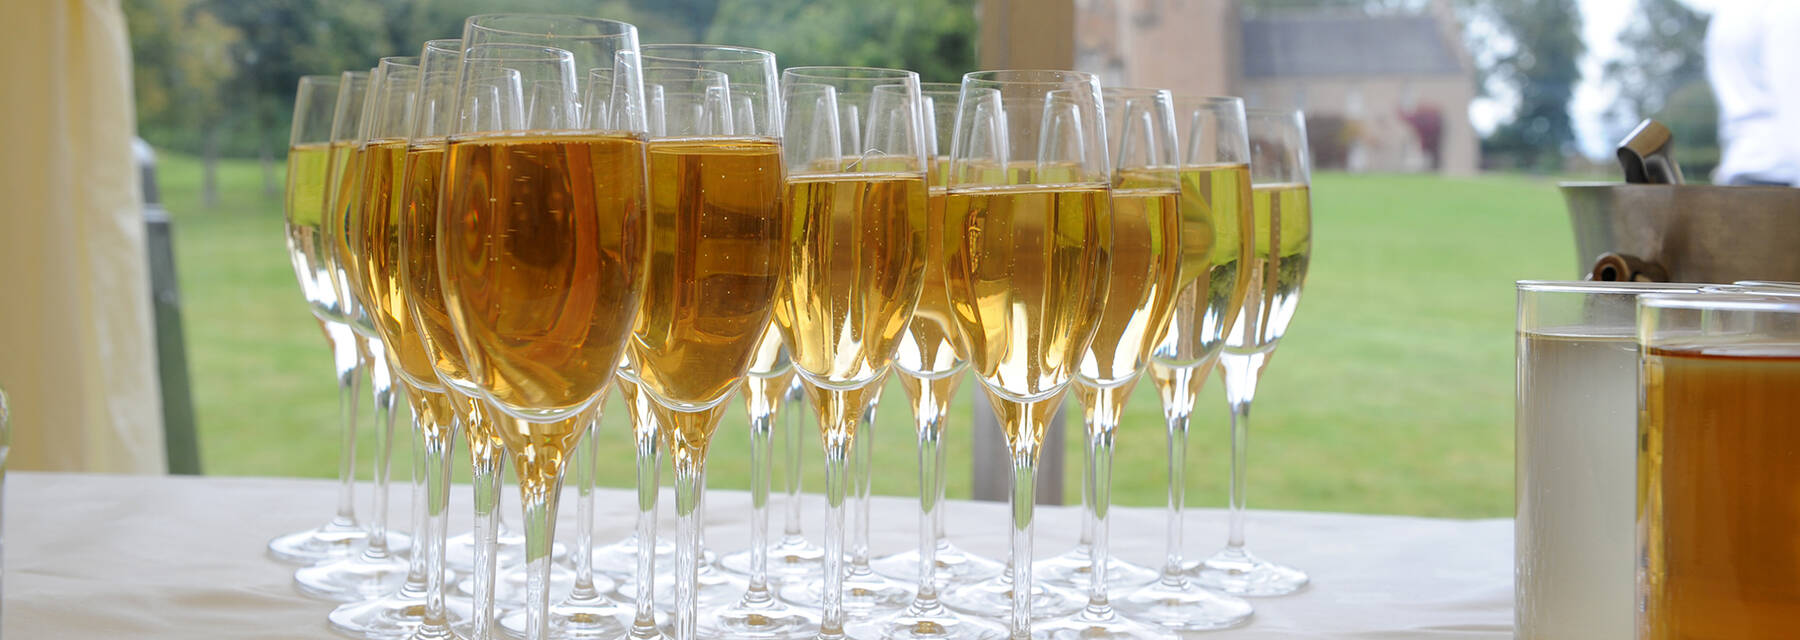 Filled wine glasses at Crathes Castle